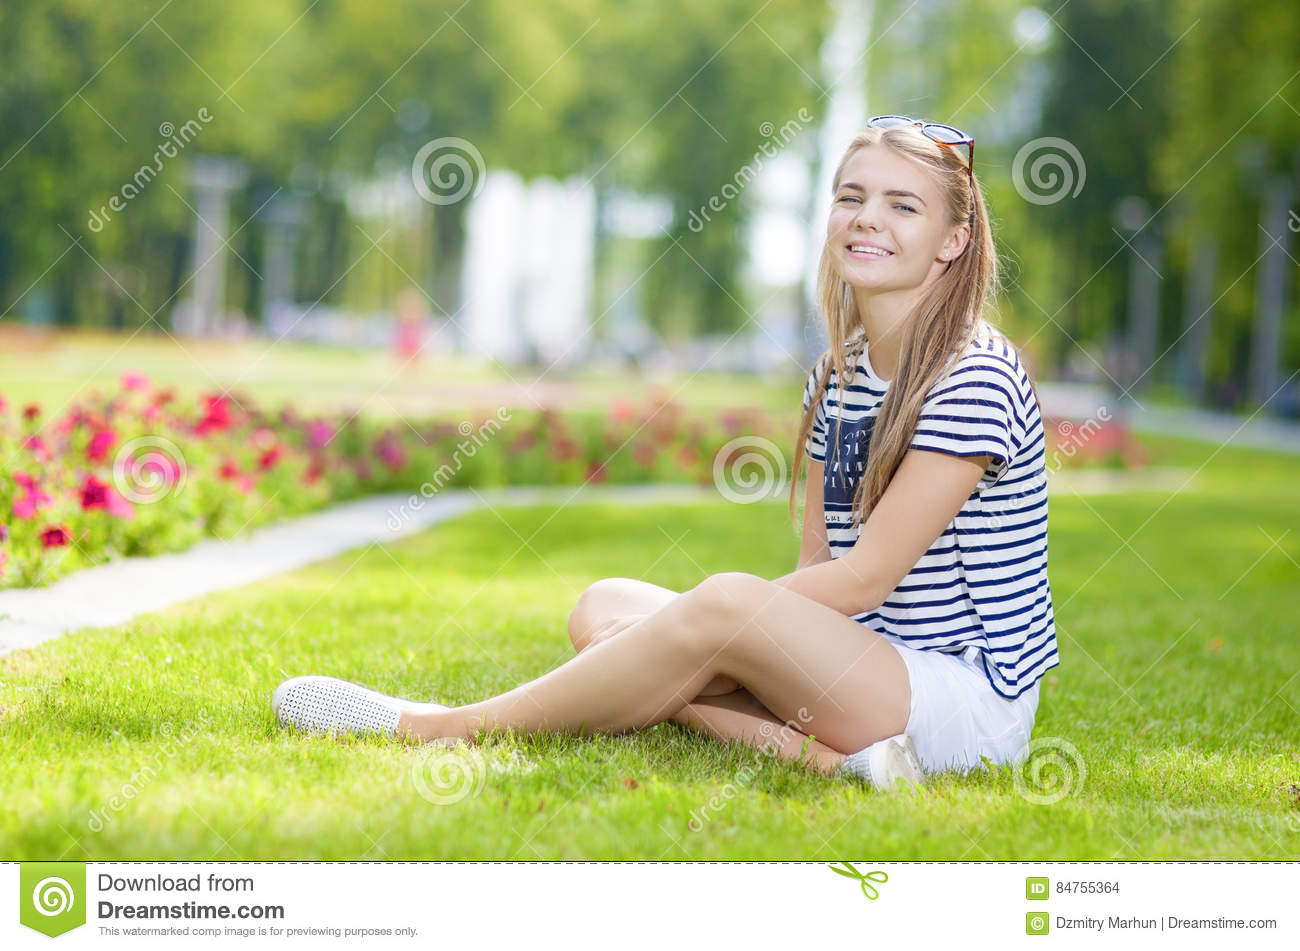 Portrait of Happy Smiling Caucasian Teenage Girl Posing on the Grass in Green Flowery Summer Park